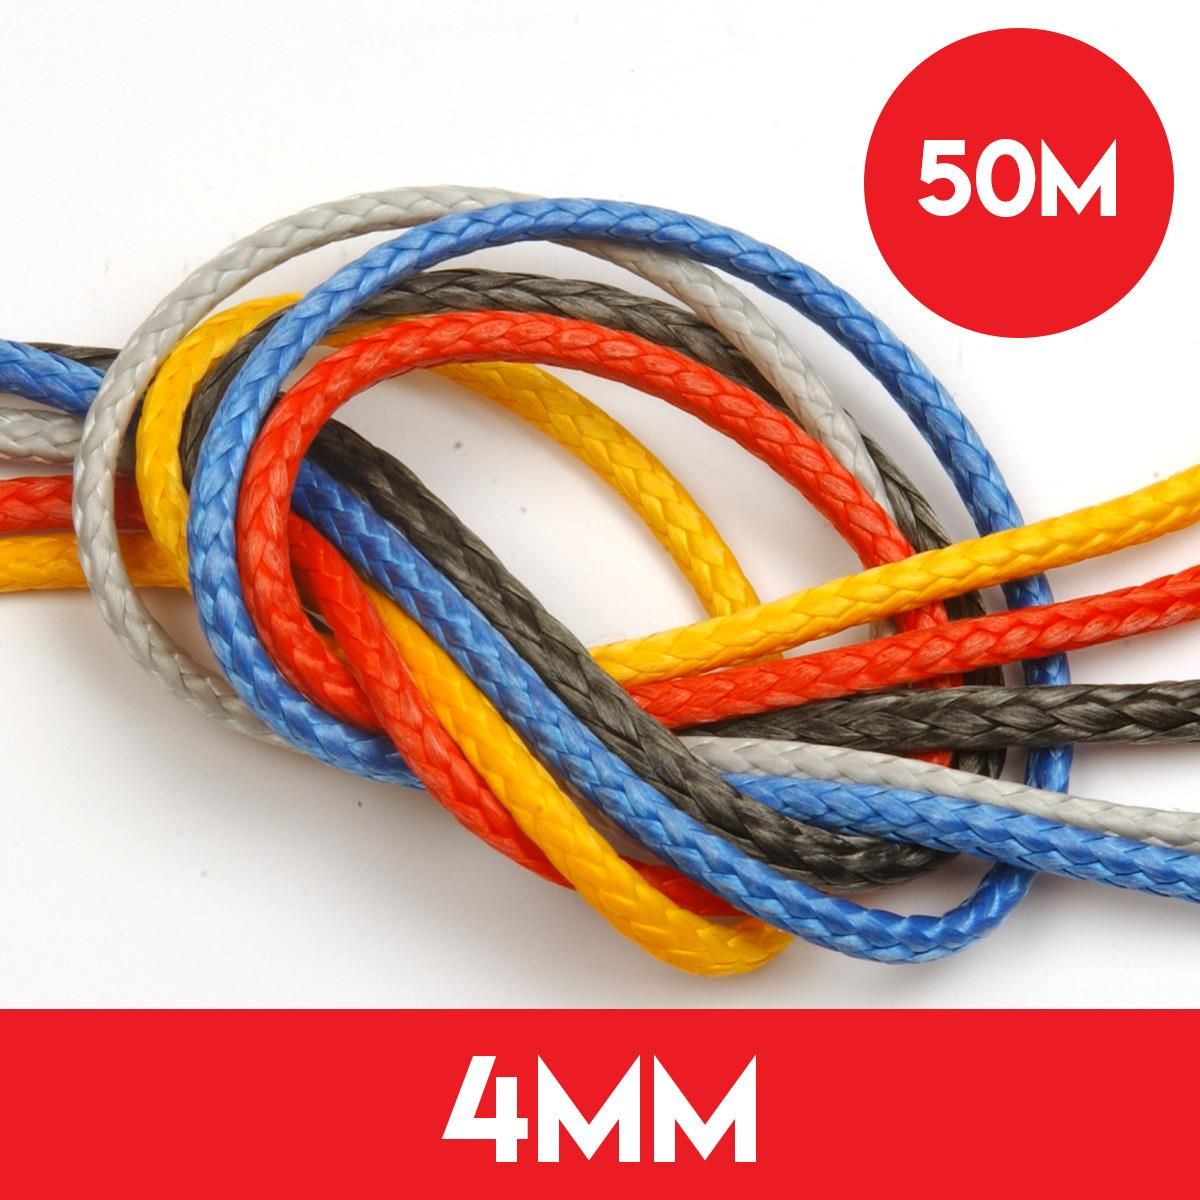 50m Reel of 4mm Dyneema SK78